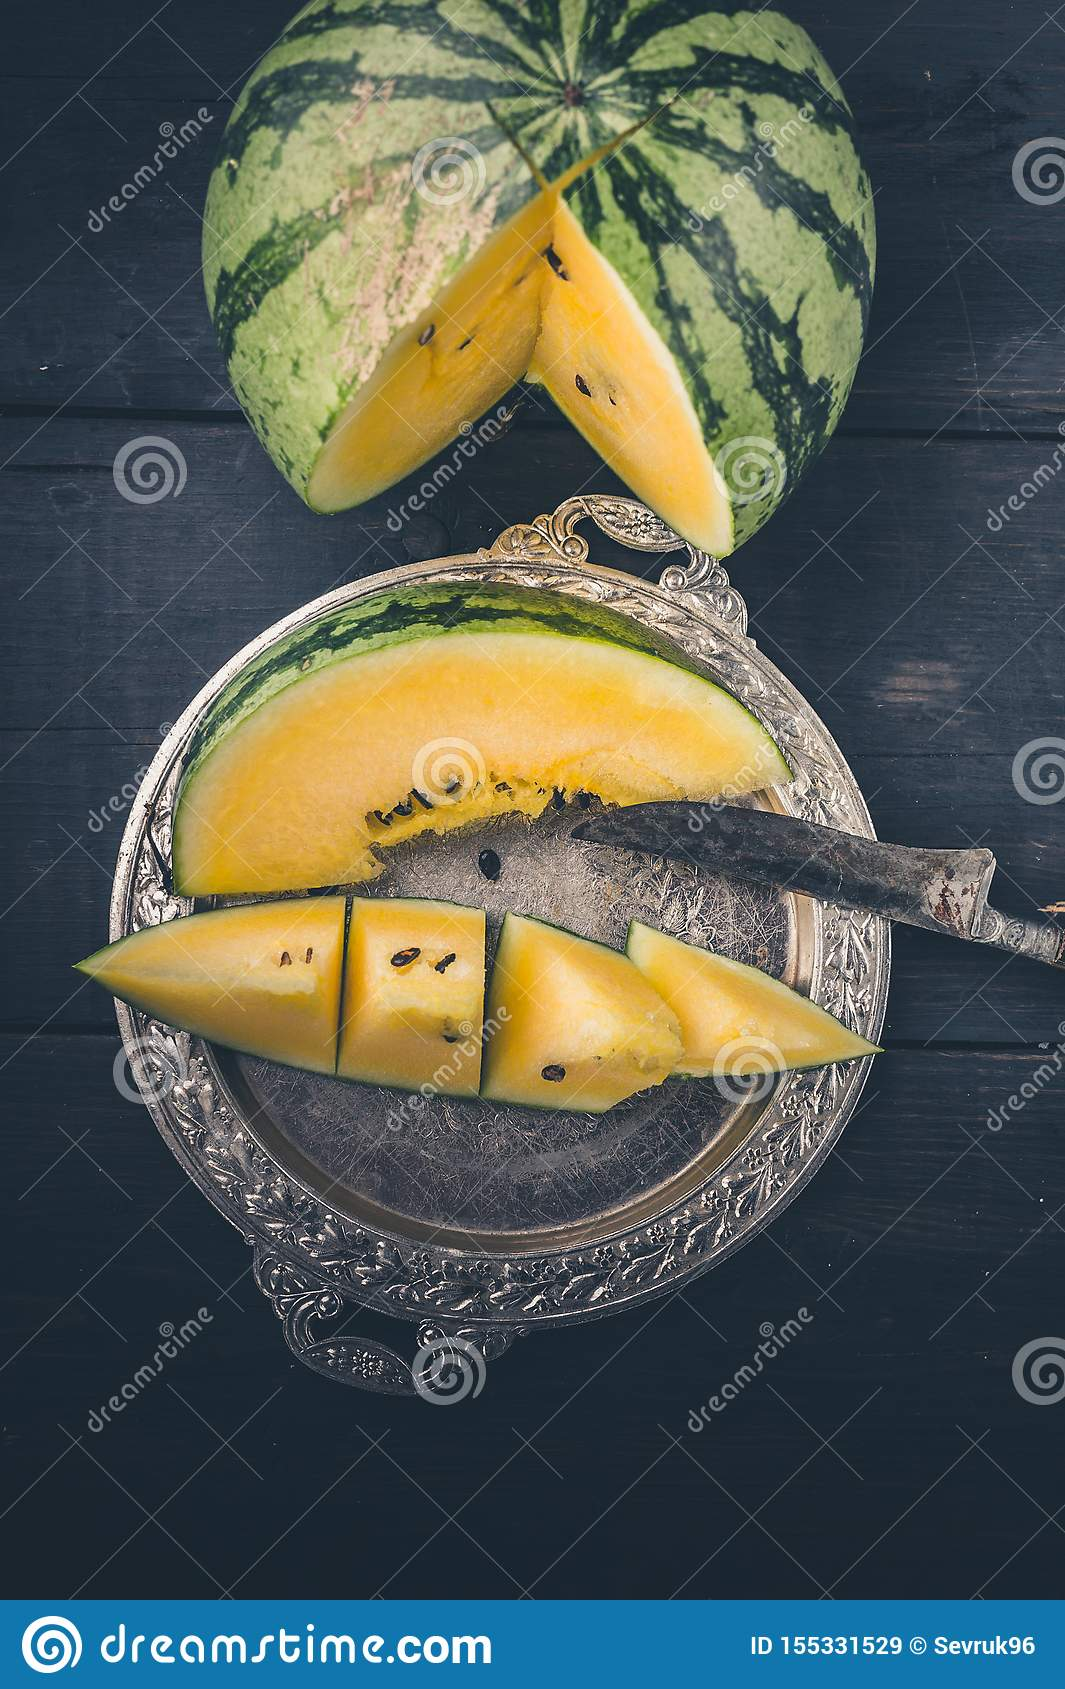 Yellow watermelon, slice of watermelon on a silver plate and knife on a dark wooden background. Vertical shot